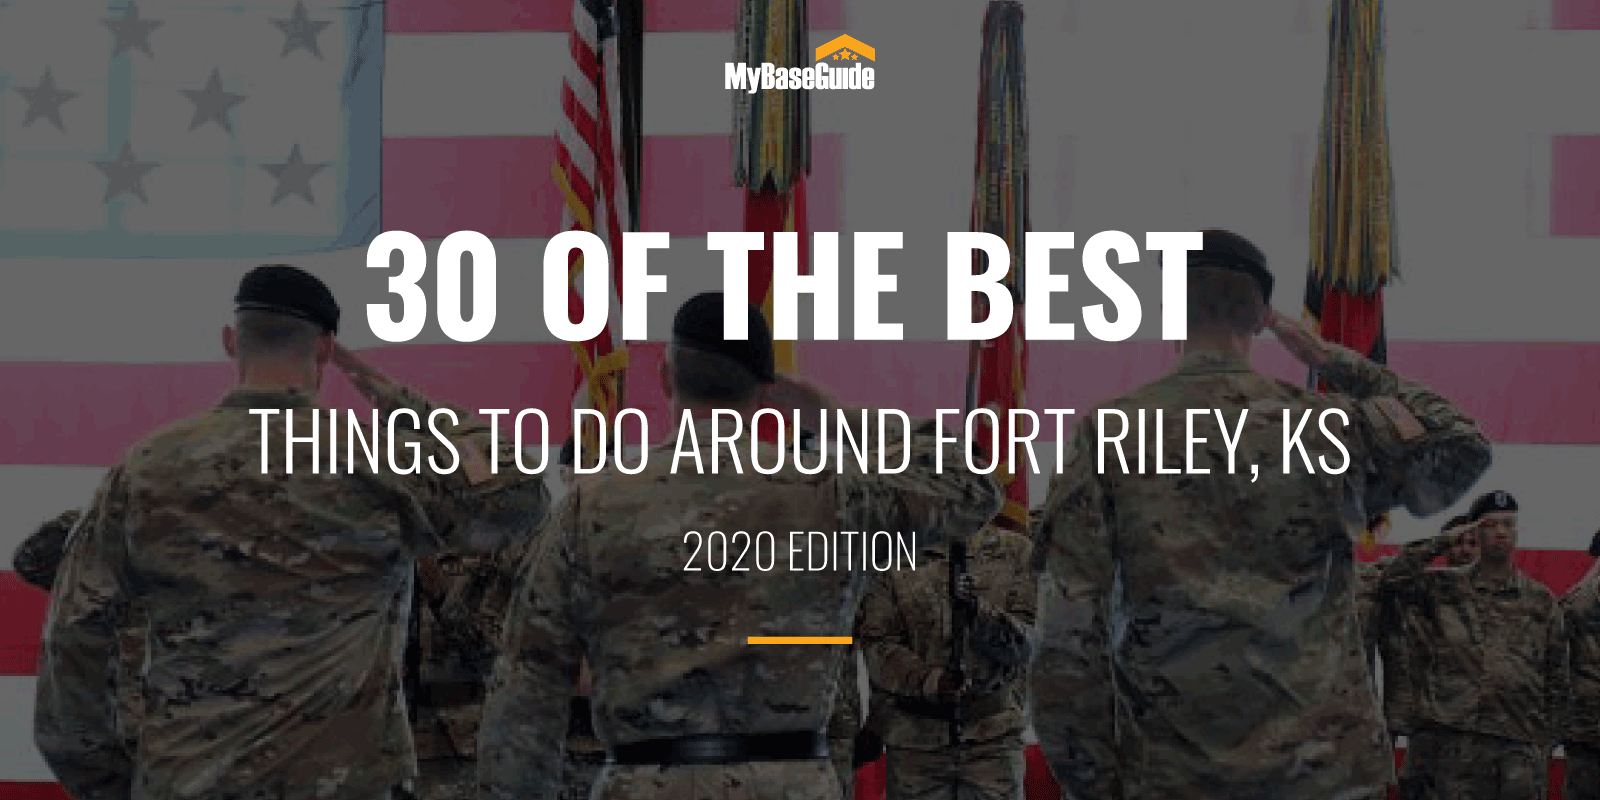 30 Of the Best Things to Do Around Fort Riley, Kansas